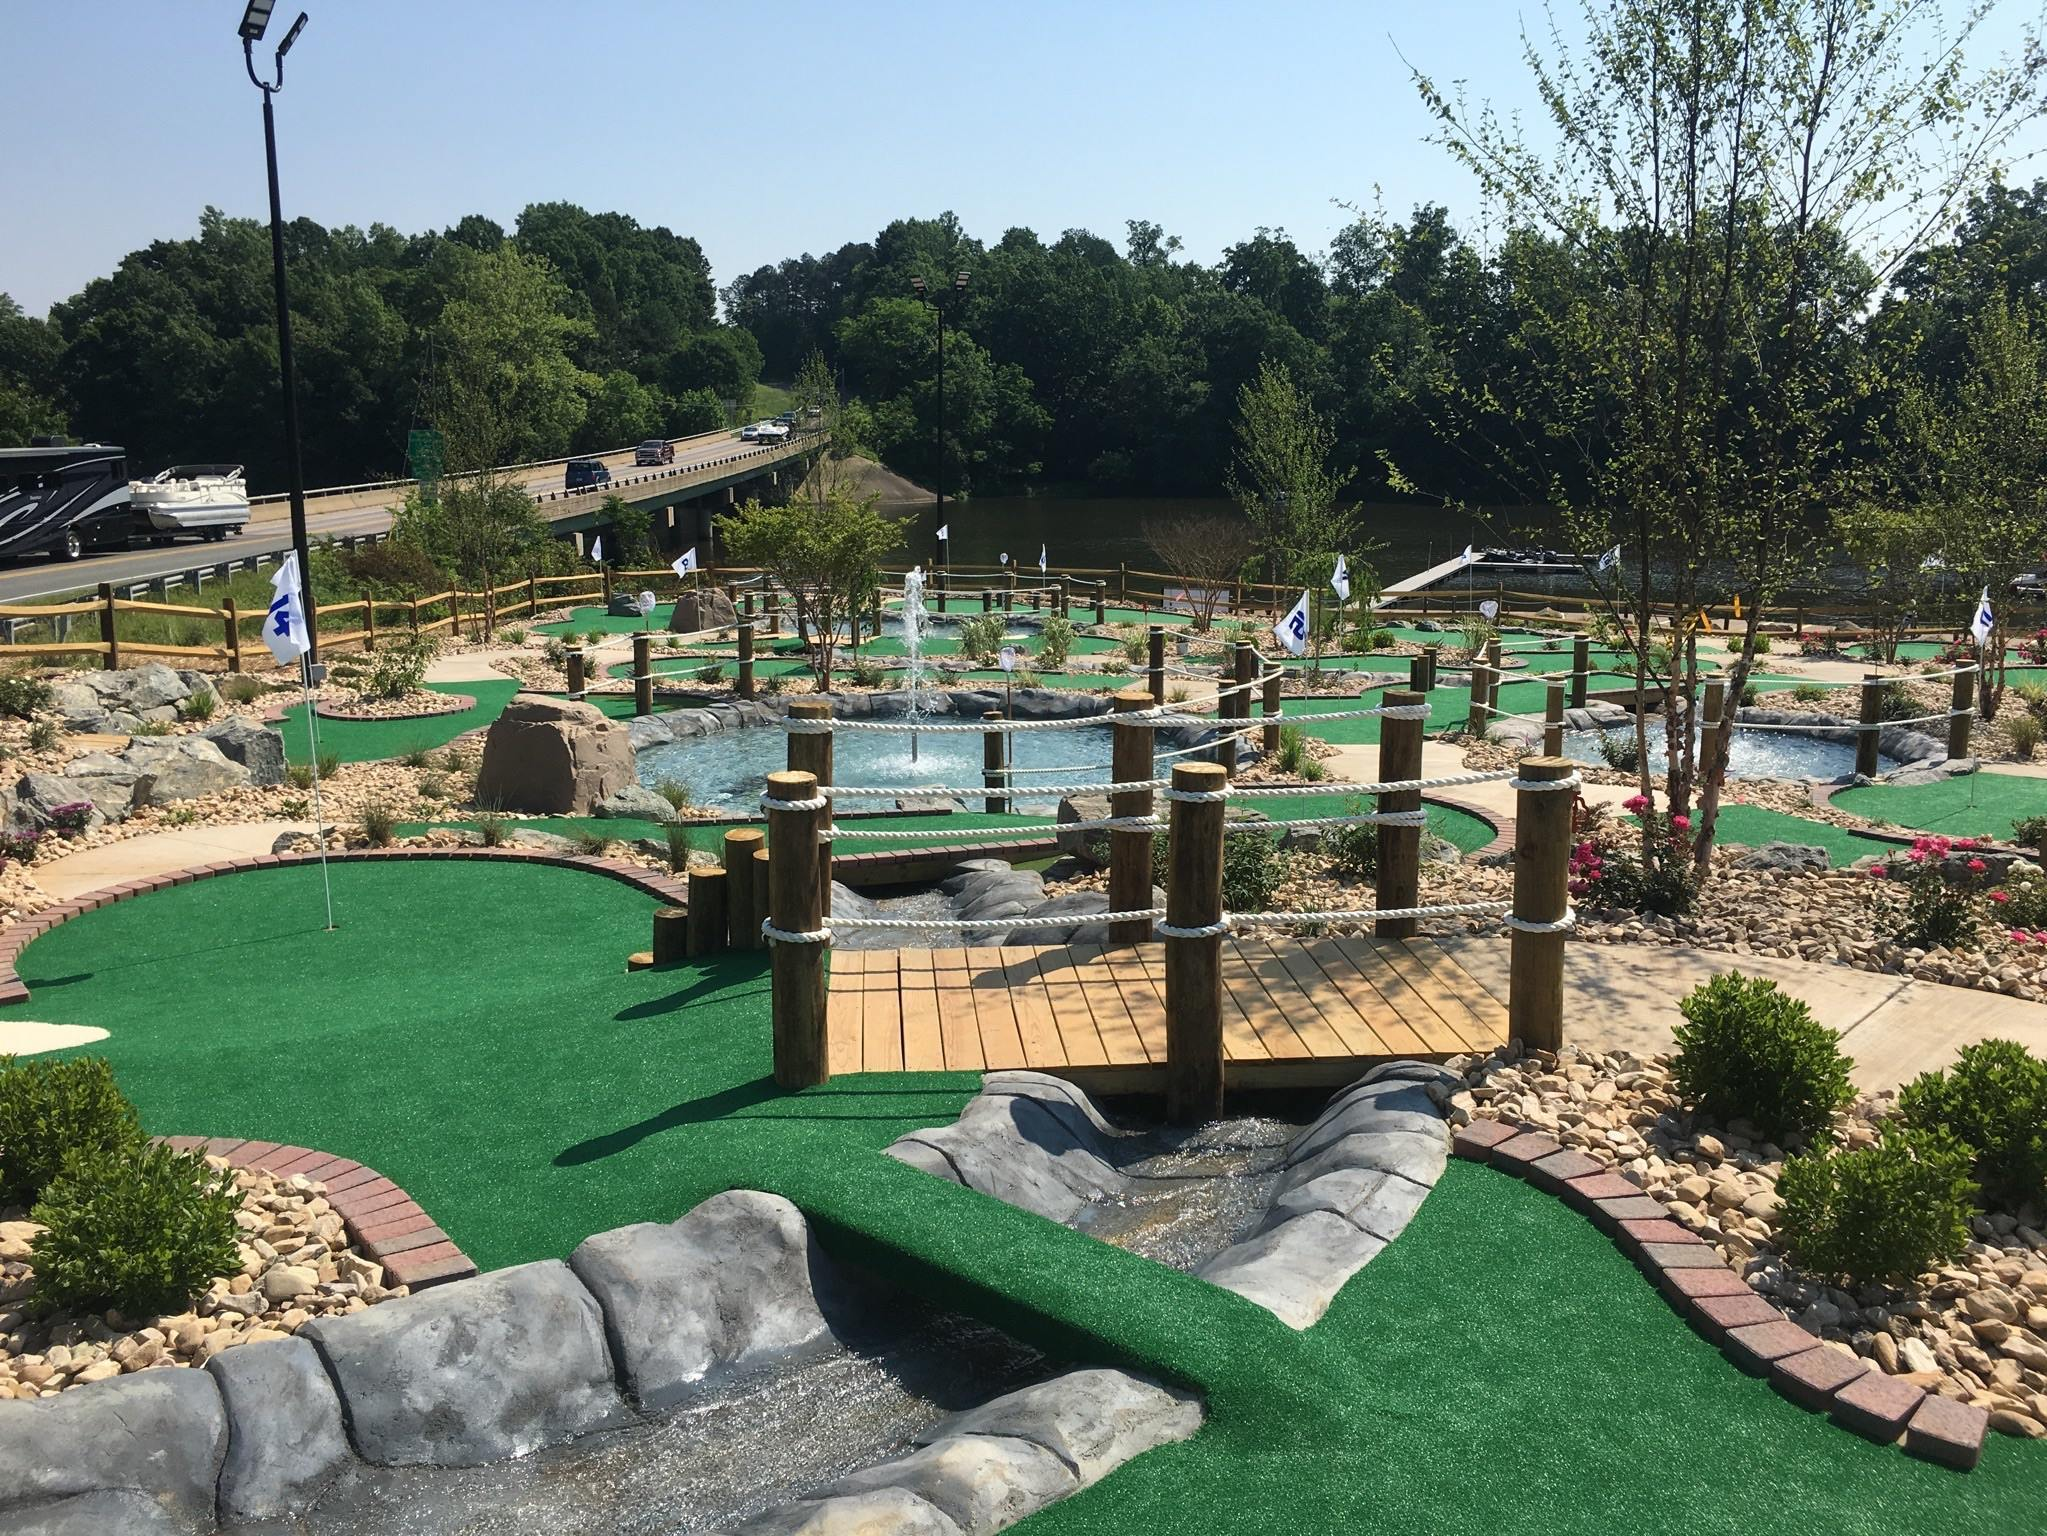 Boardwalk Miniature Golf